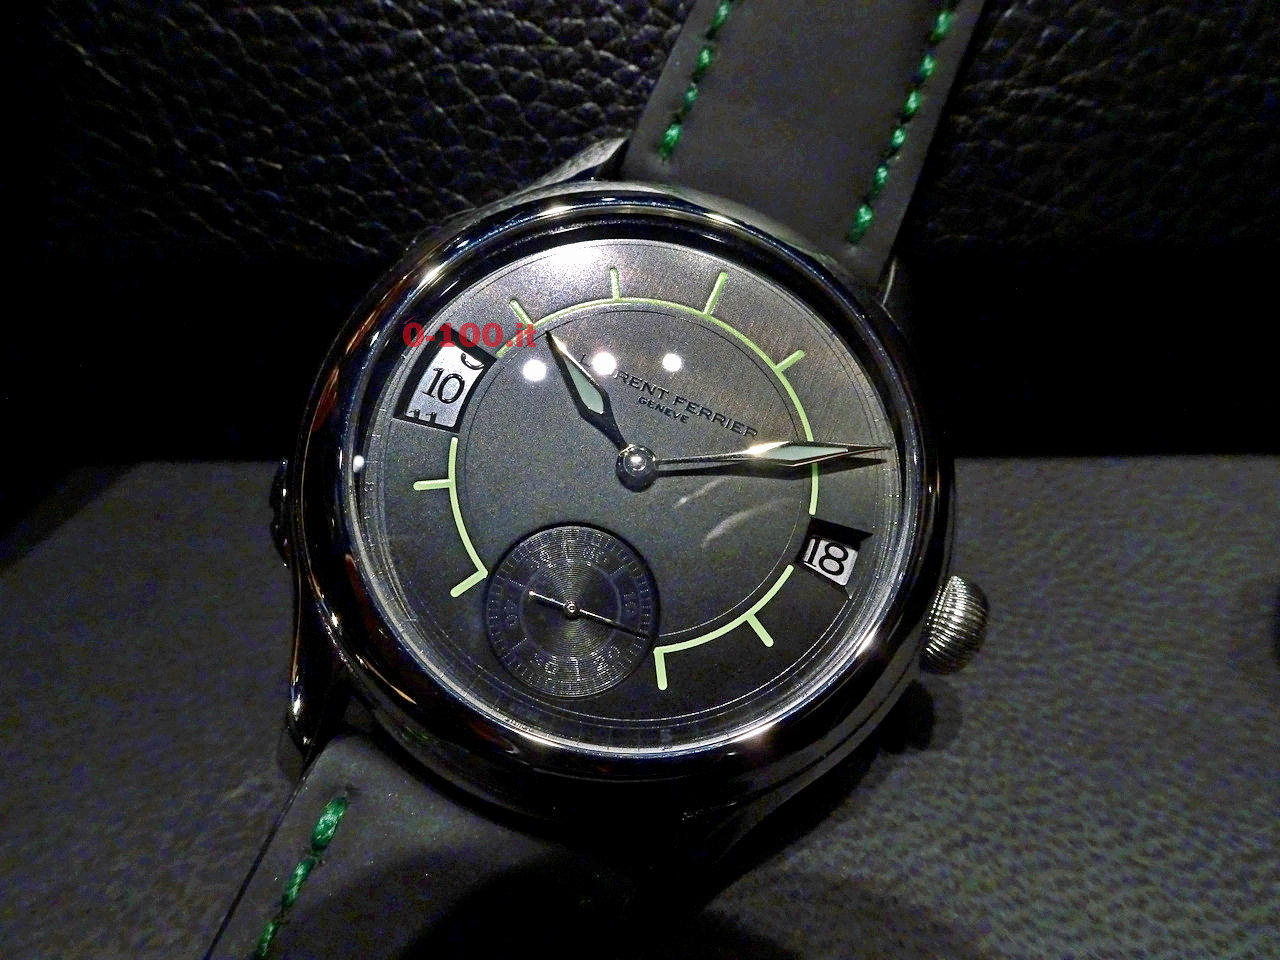 SIHH-2016-Laurent-ferrier_0-100_13